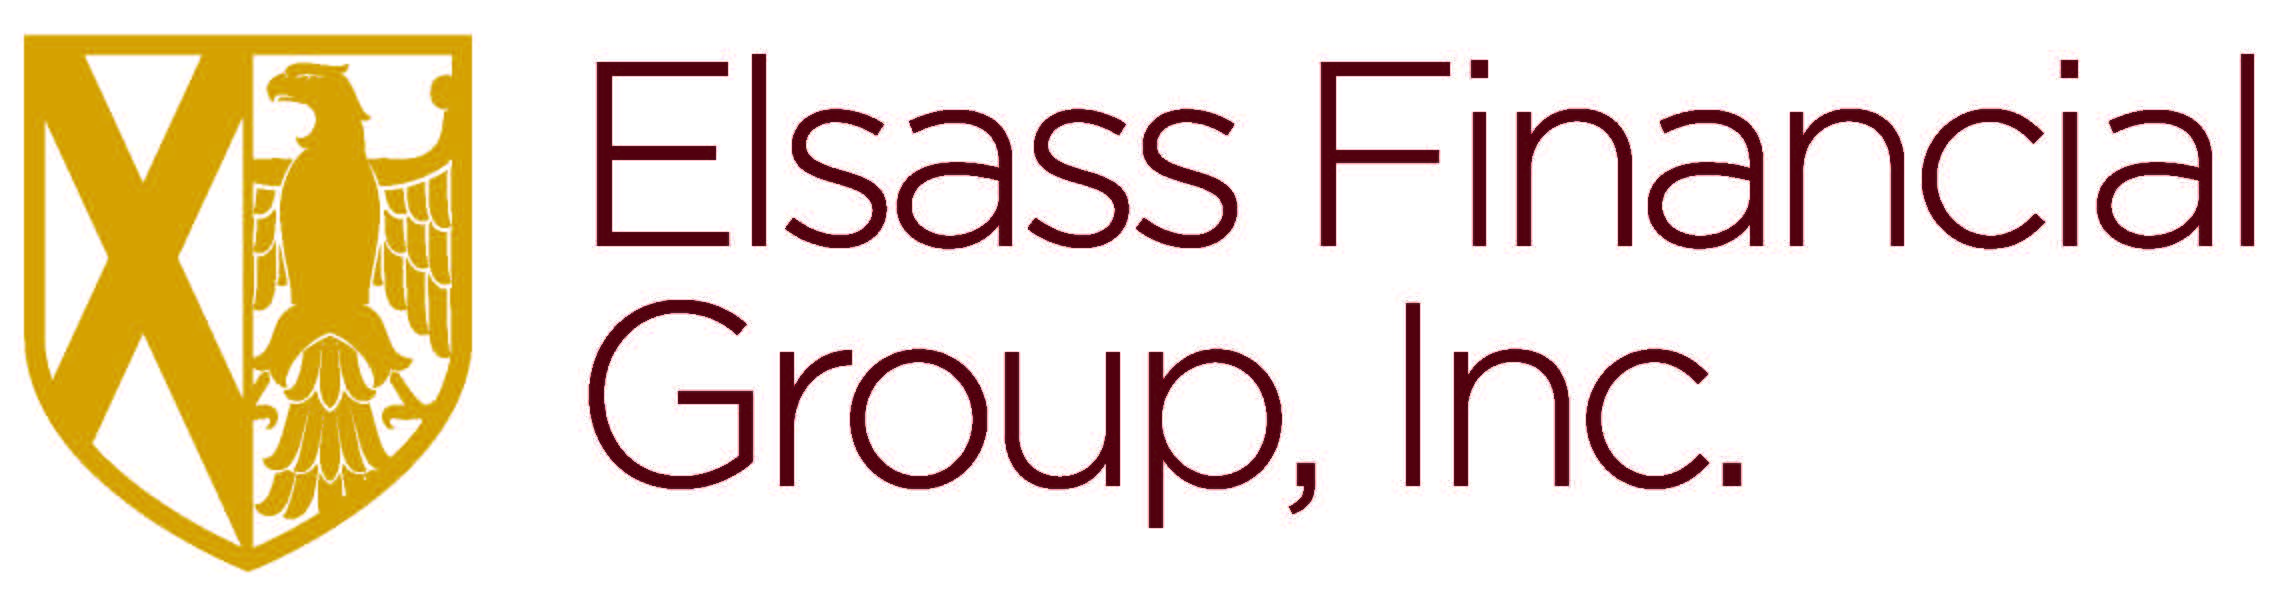 Elsass Financial Group